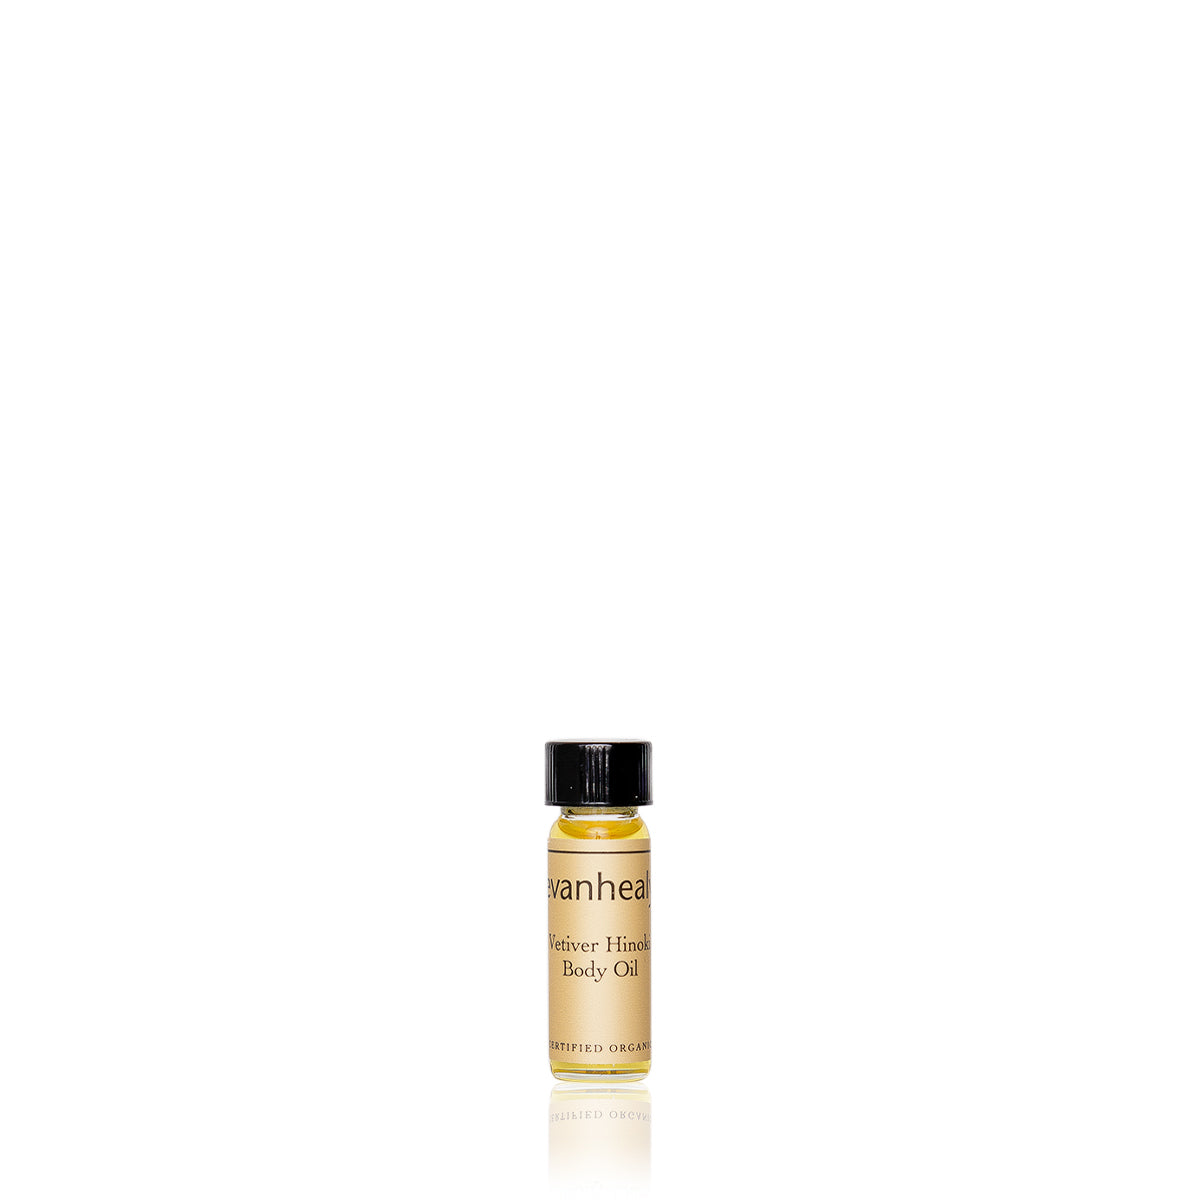 Vetiver Hinoki Body Oil Sample